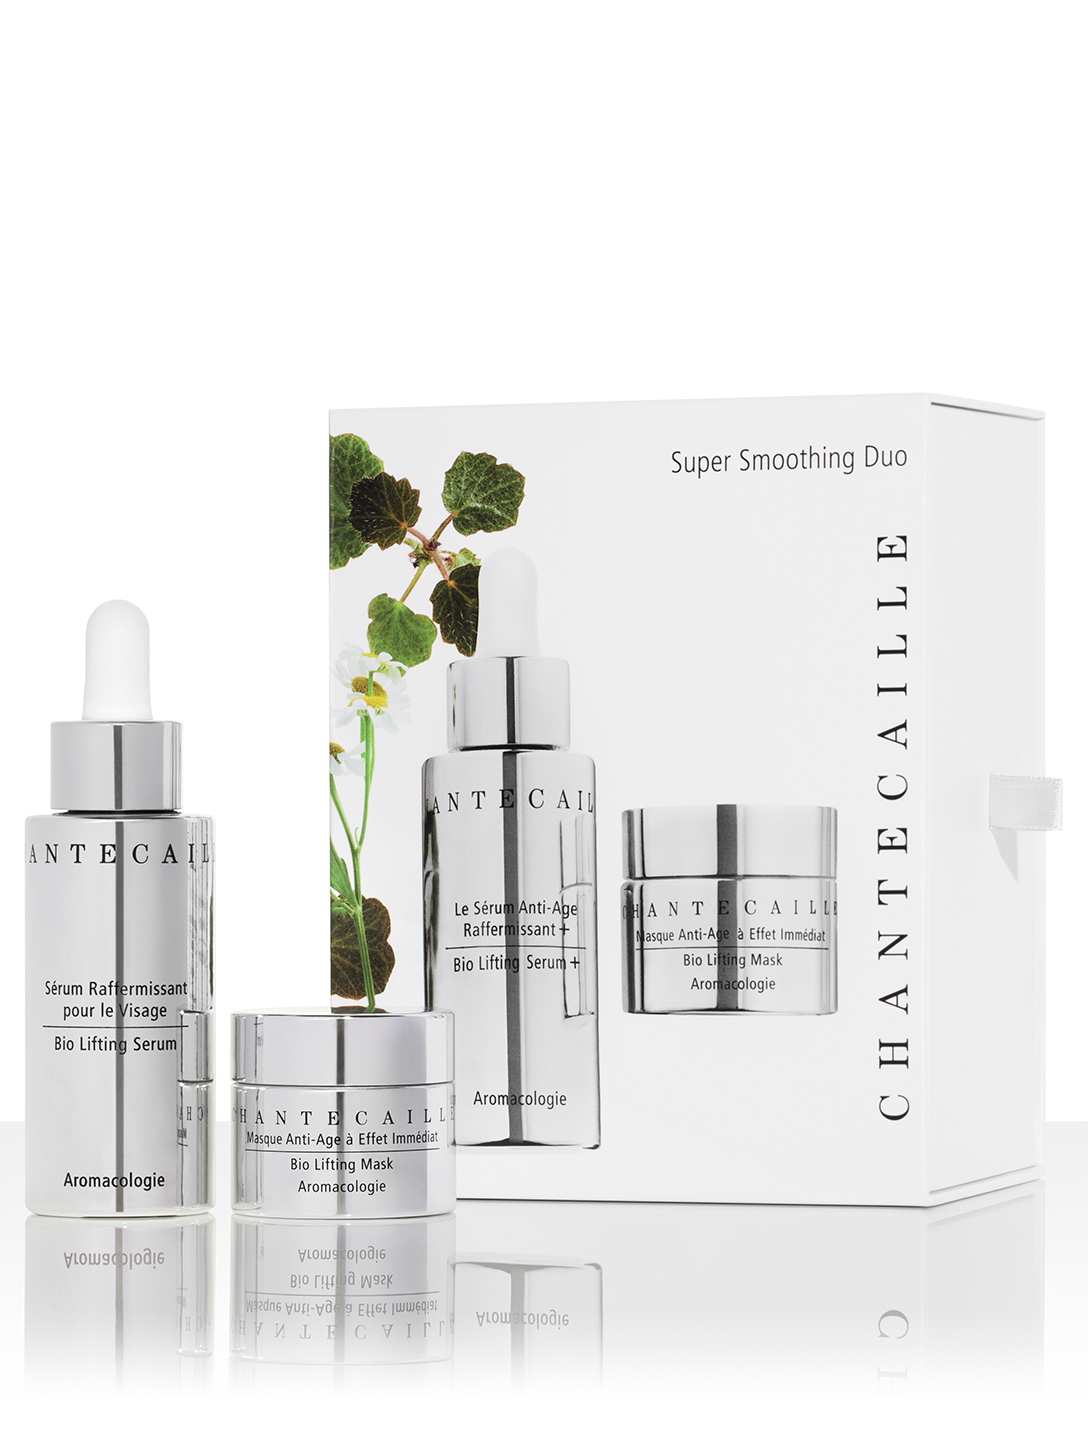 CHANTECAILLE Duo Super Smoothing Beauté